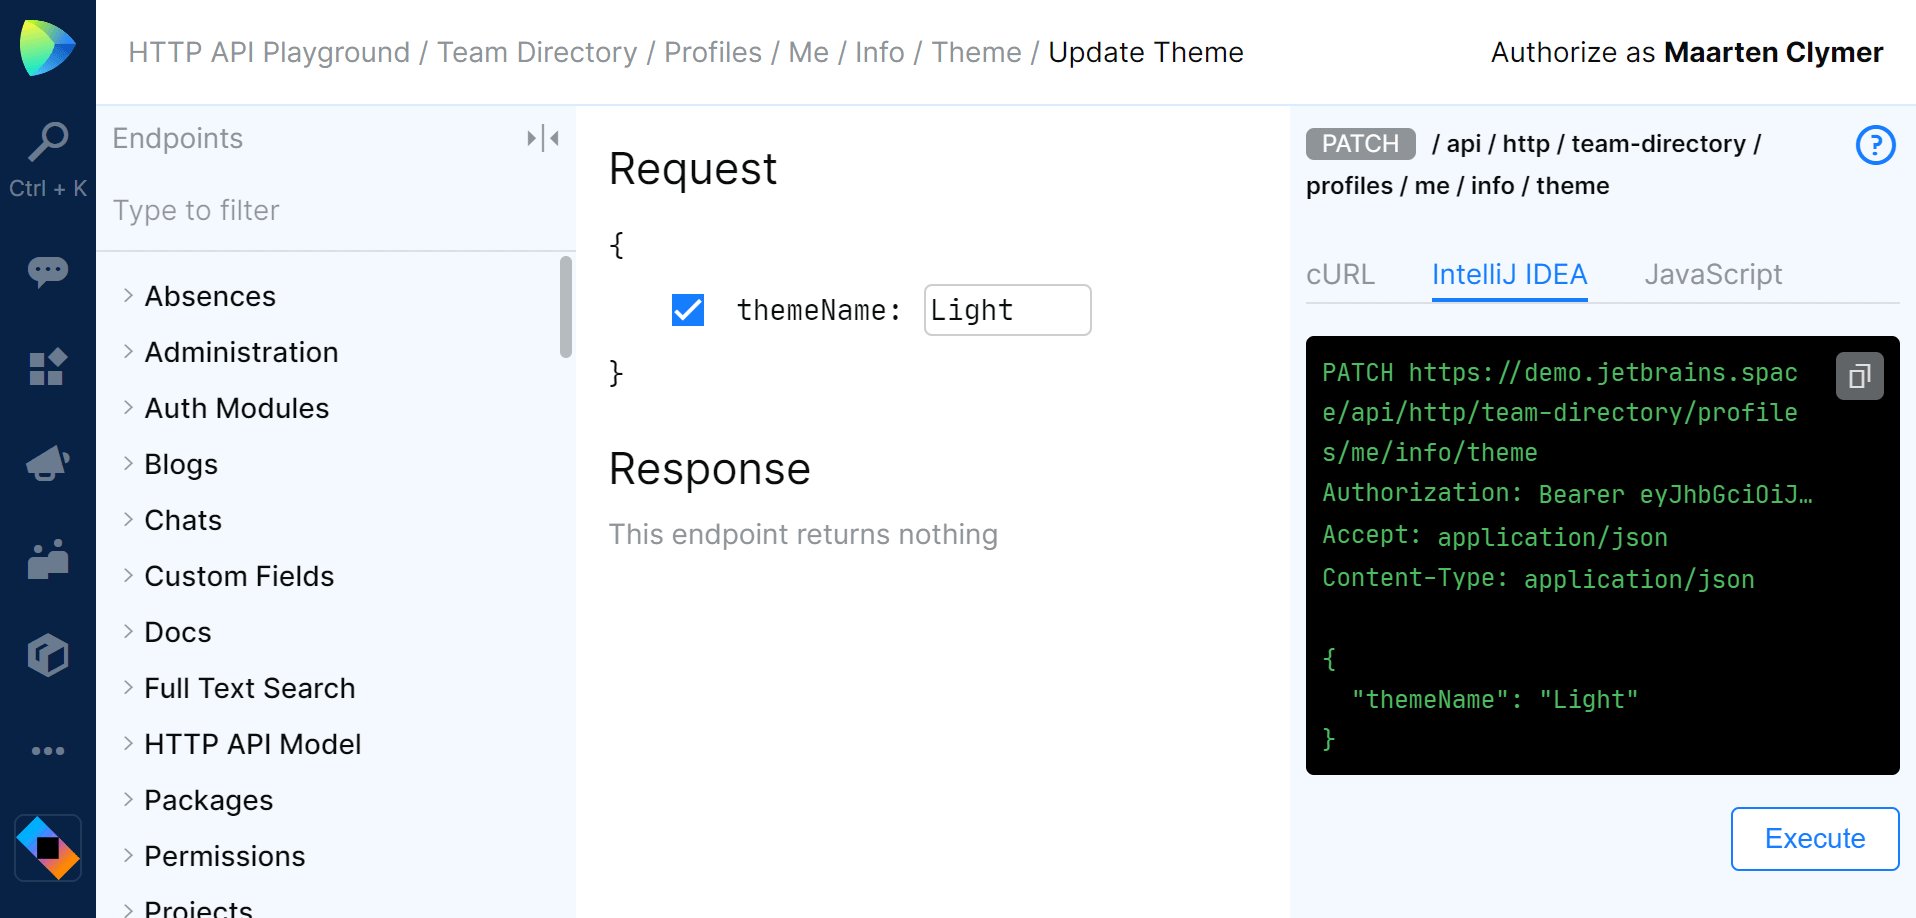 HTTP API playground is available in every JetBrains Space organization